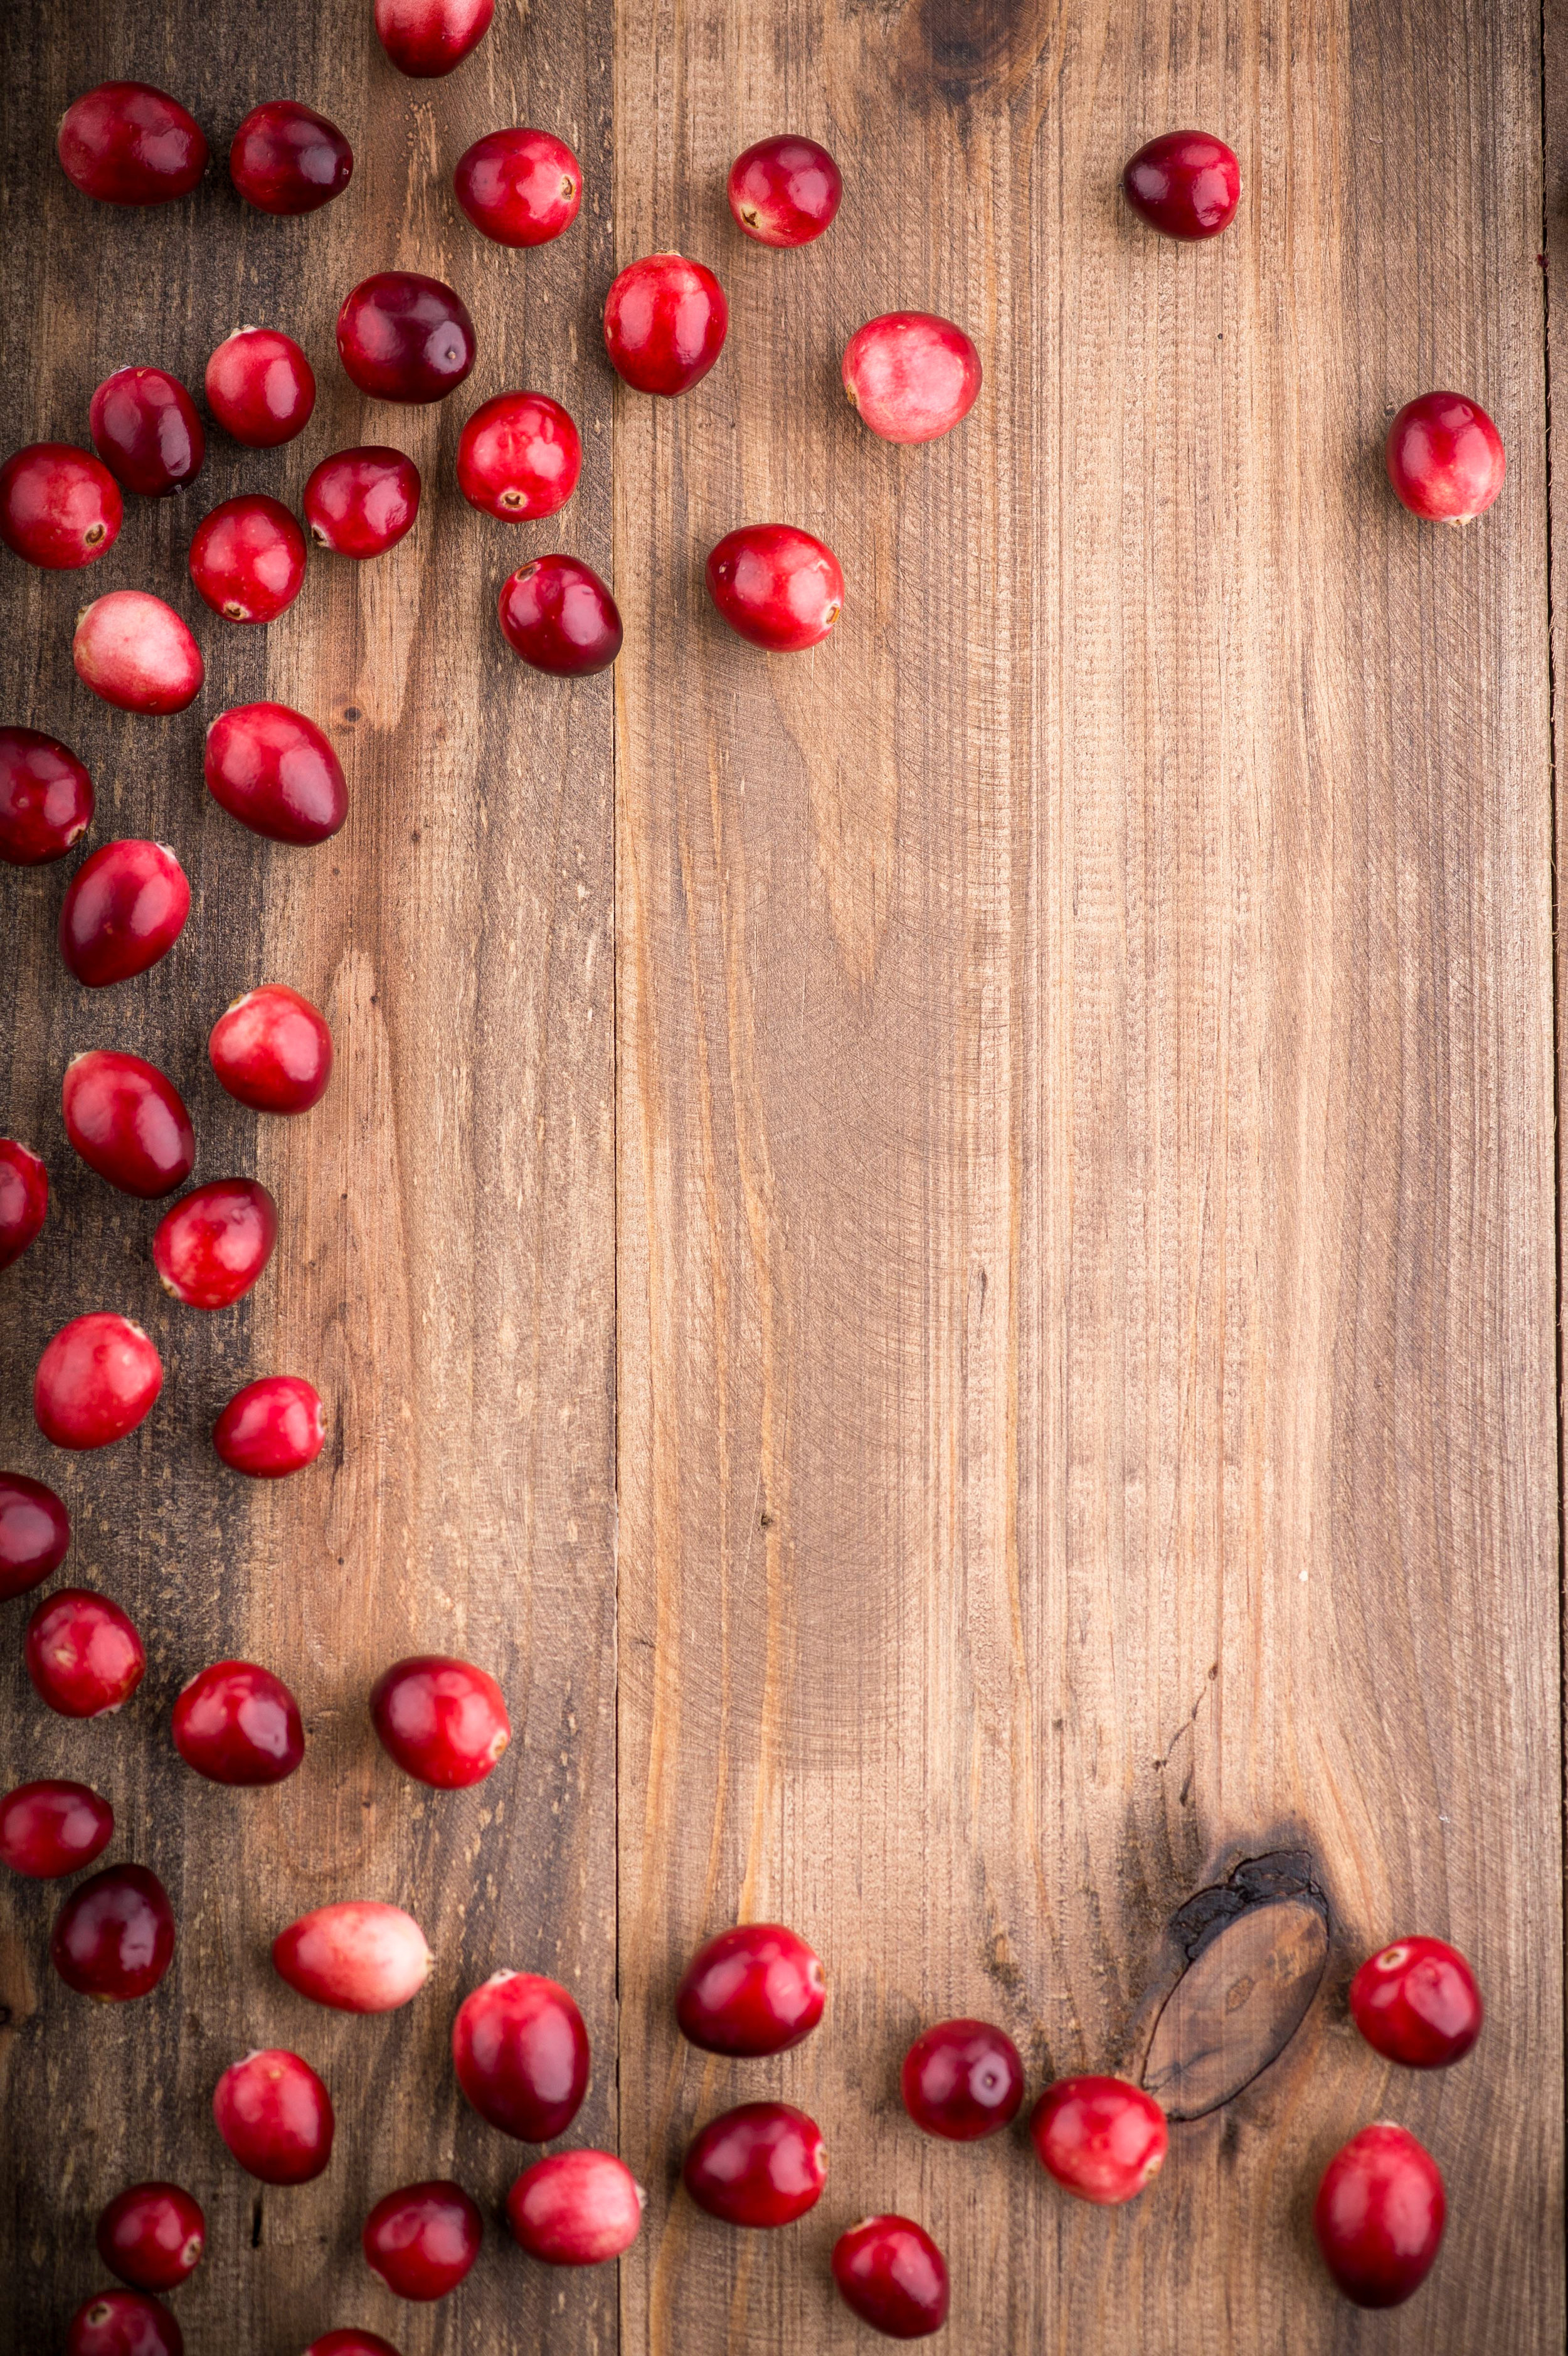 Corporate Imagery 89Brown wood with berries and blank space001*2-2.jpg